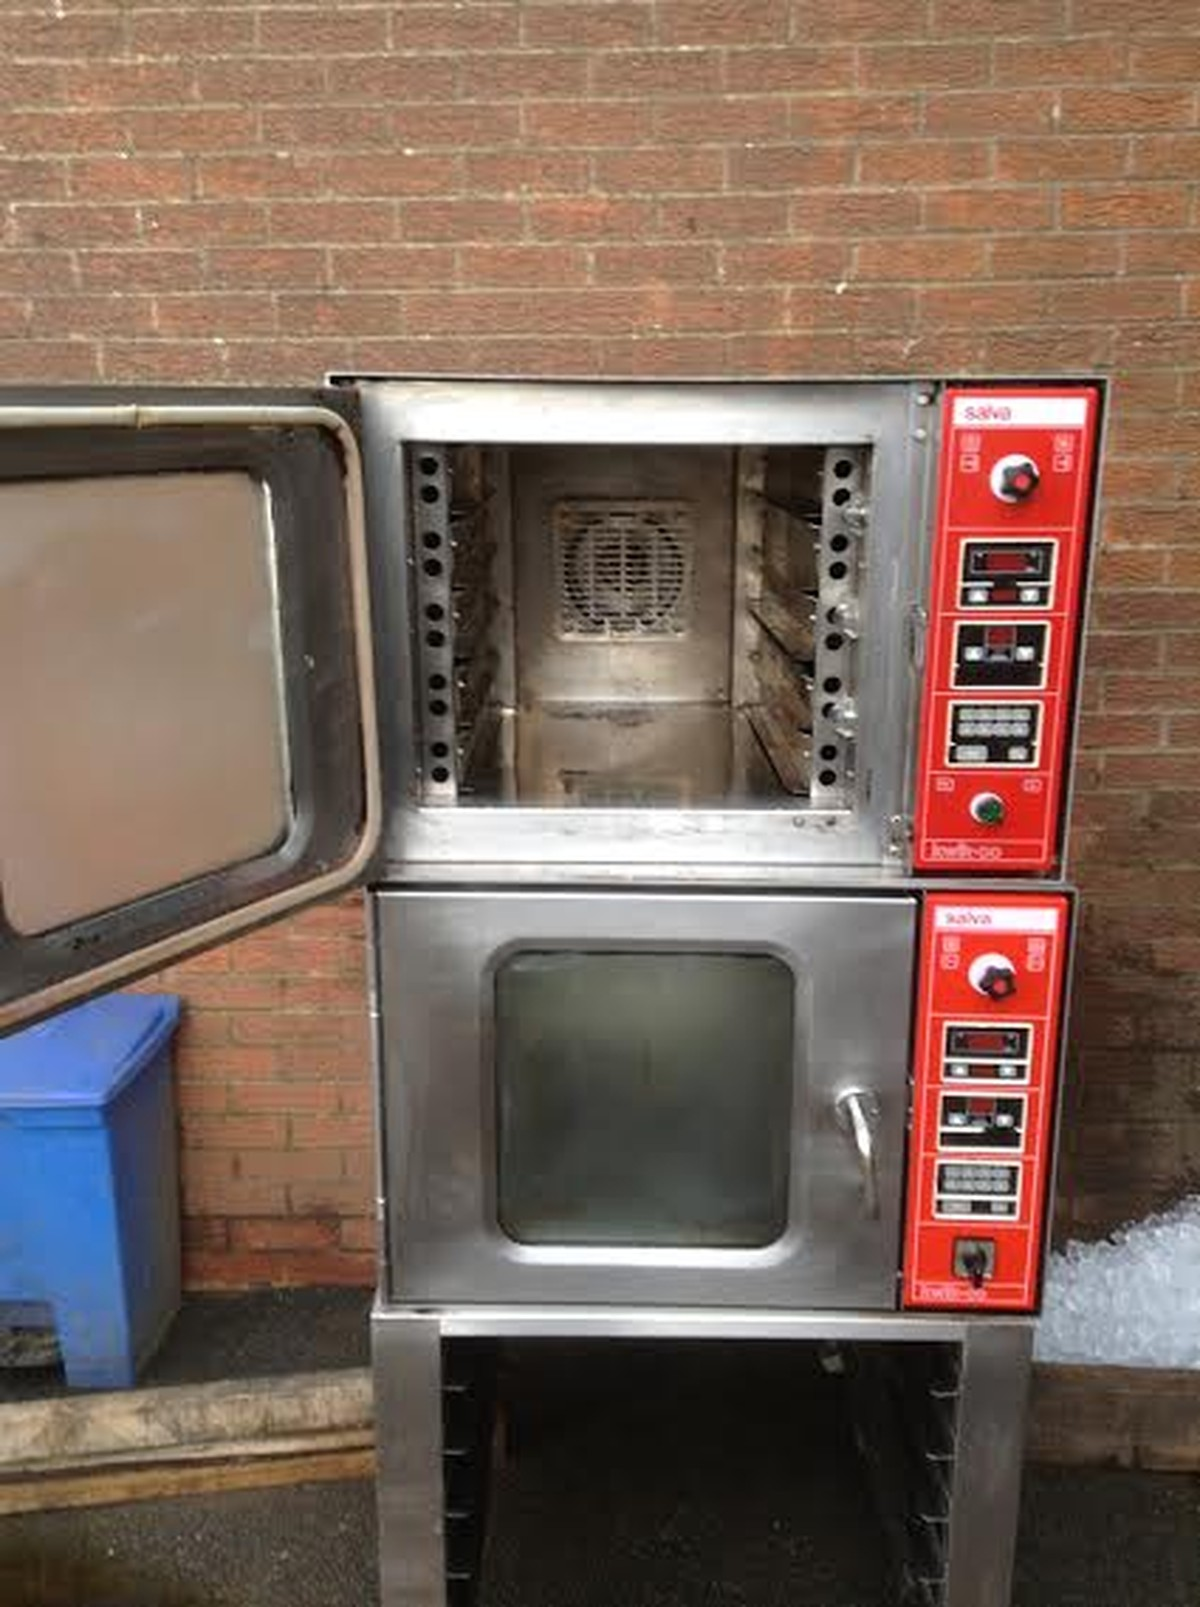 Oven Used In Bake Off Phase Bake Off Oven